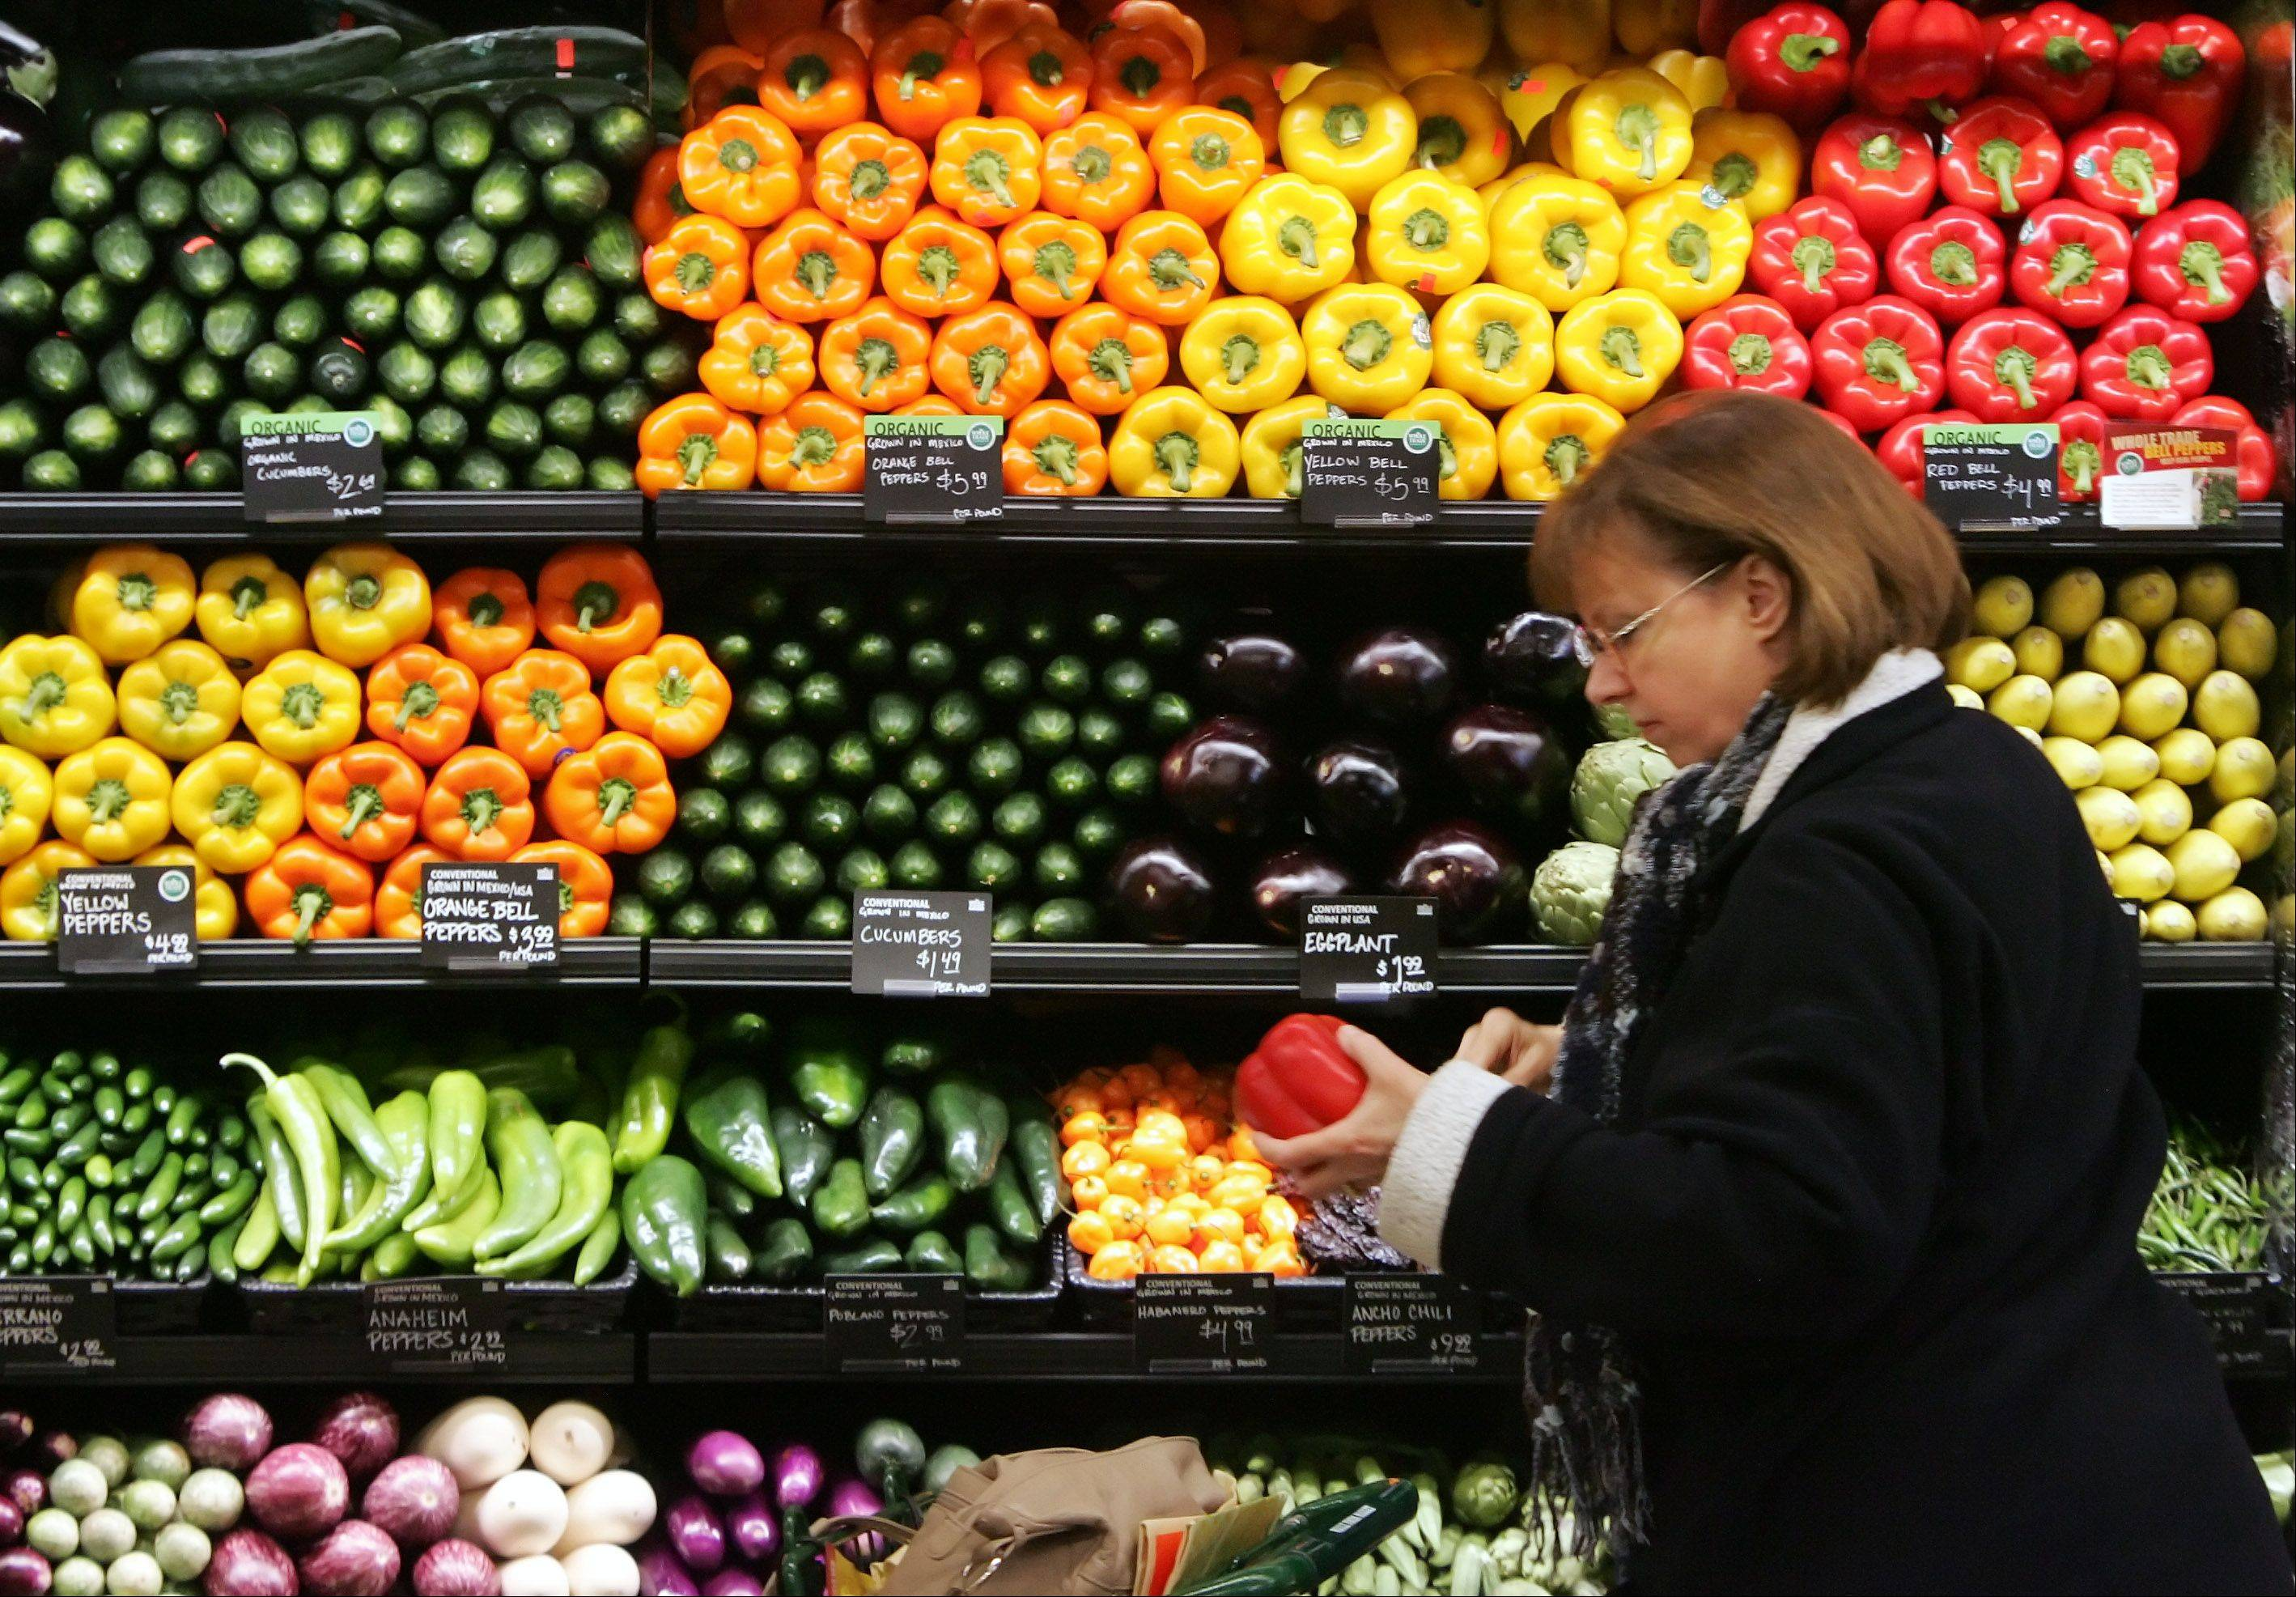 Elaine Cotter, of Long Grove, looks at an organic red pepper during the grand opening of the Whole Foods store Wednesday in Kildeer. The store has relocated from a facility in Palatine.